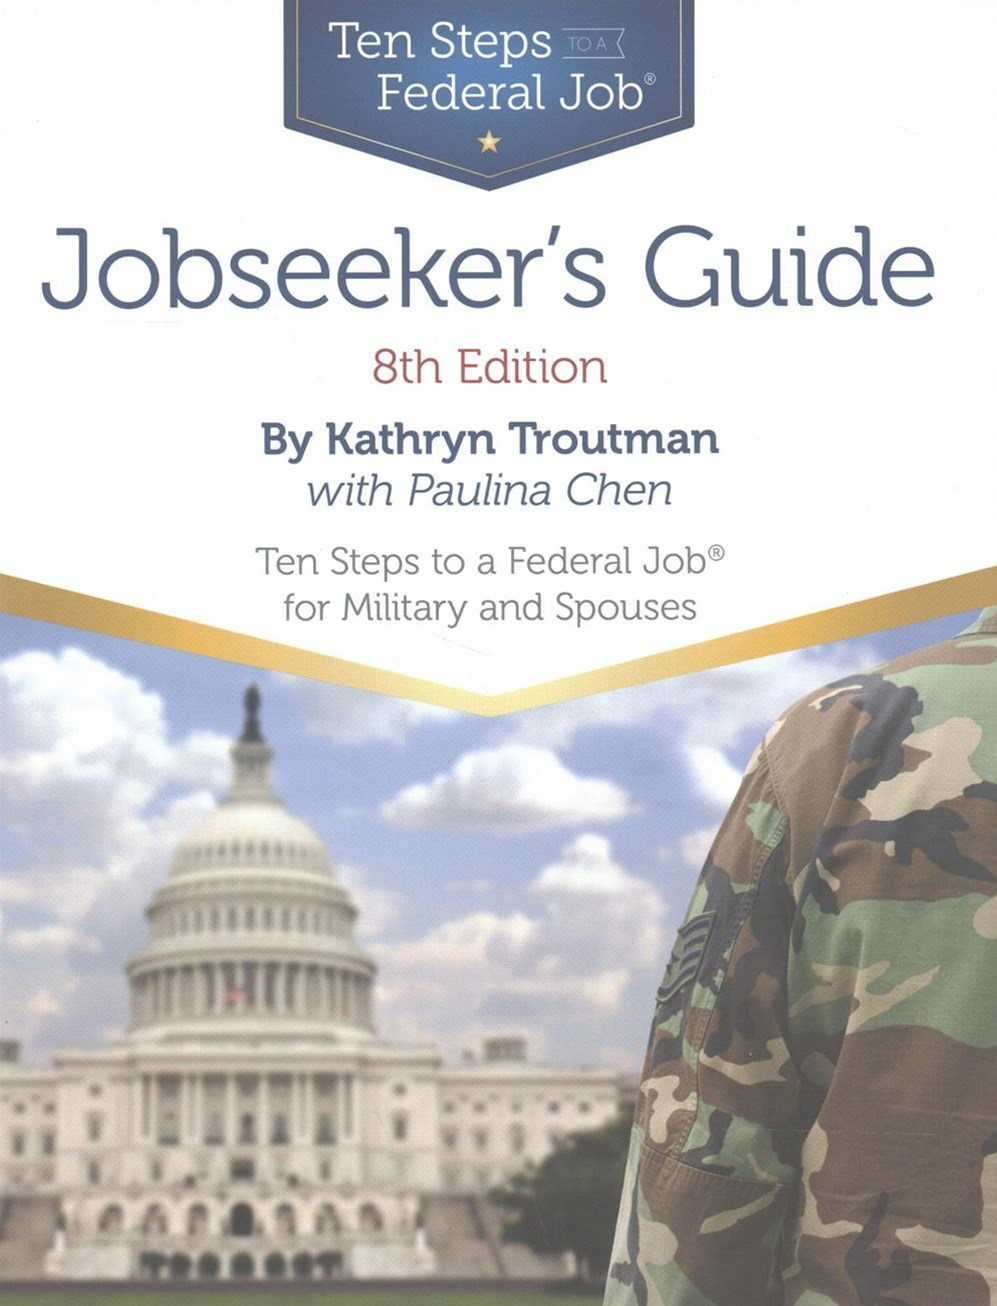 Jobseeker's Guide, 8th Edition